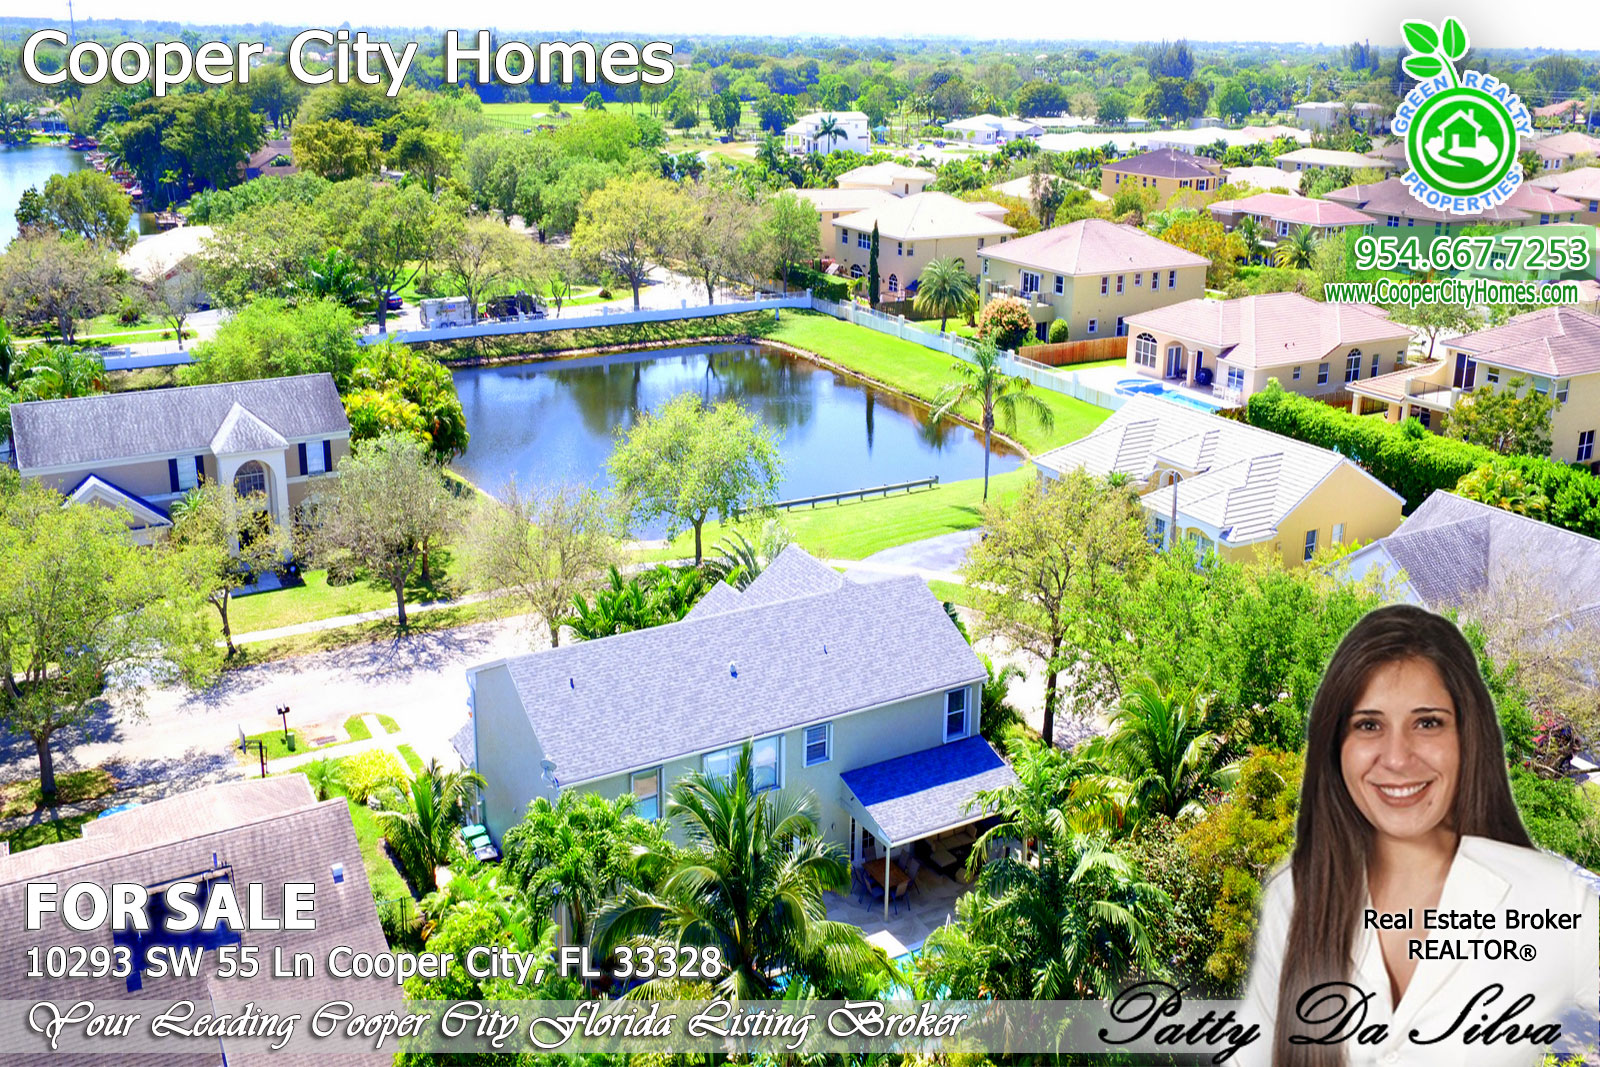 Cooper-City-South-Florida-Homes-for-Sale